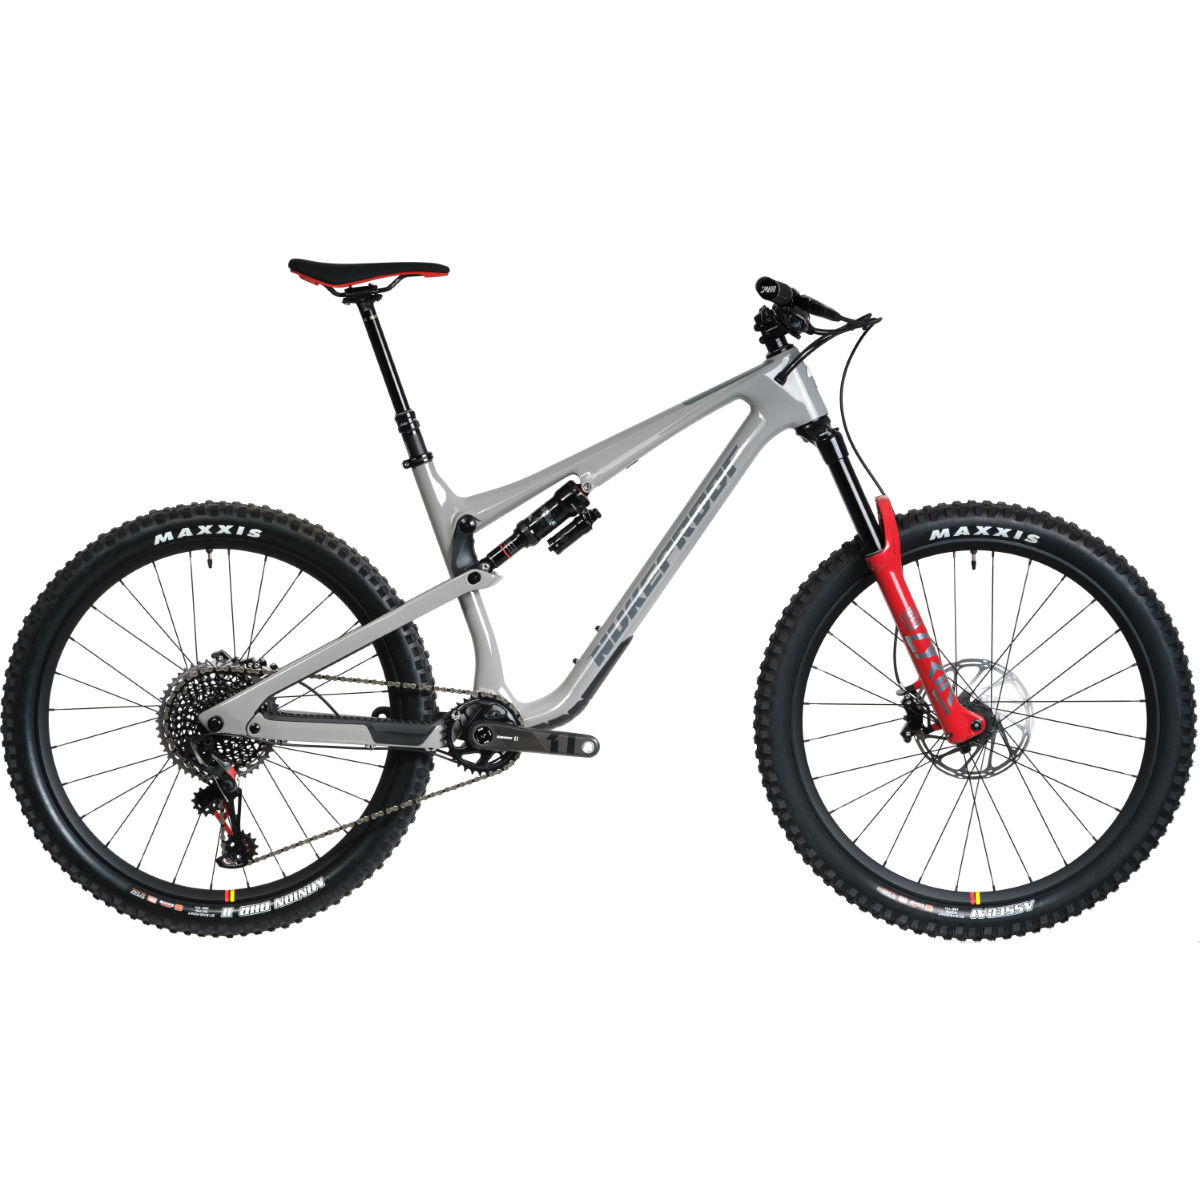 Nukeproof Nukeproof Reactor 275 RS Carbon Bike (XO1 EAGLE - 2020)   Full Suspension Mountain Bikes